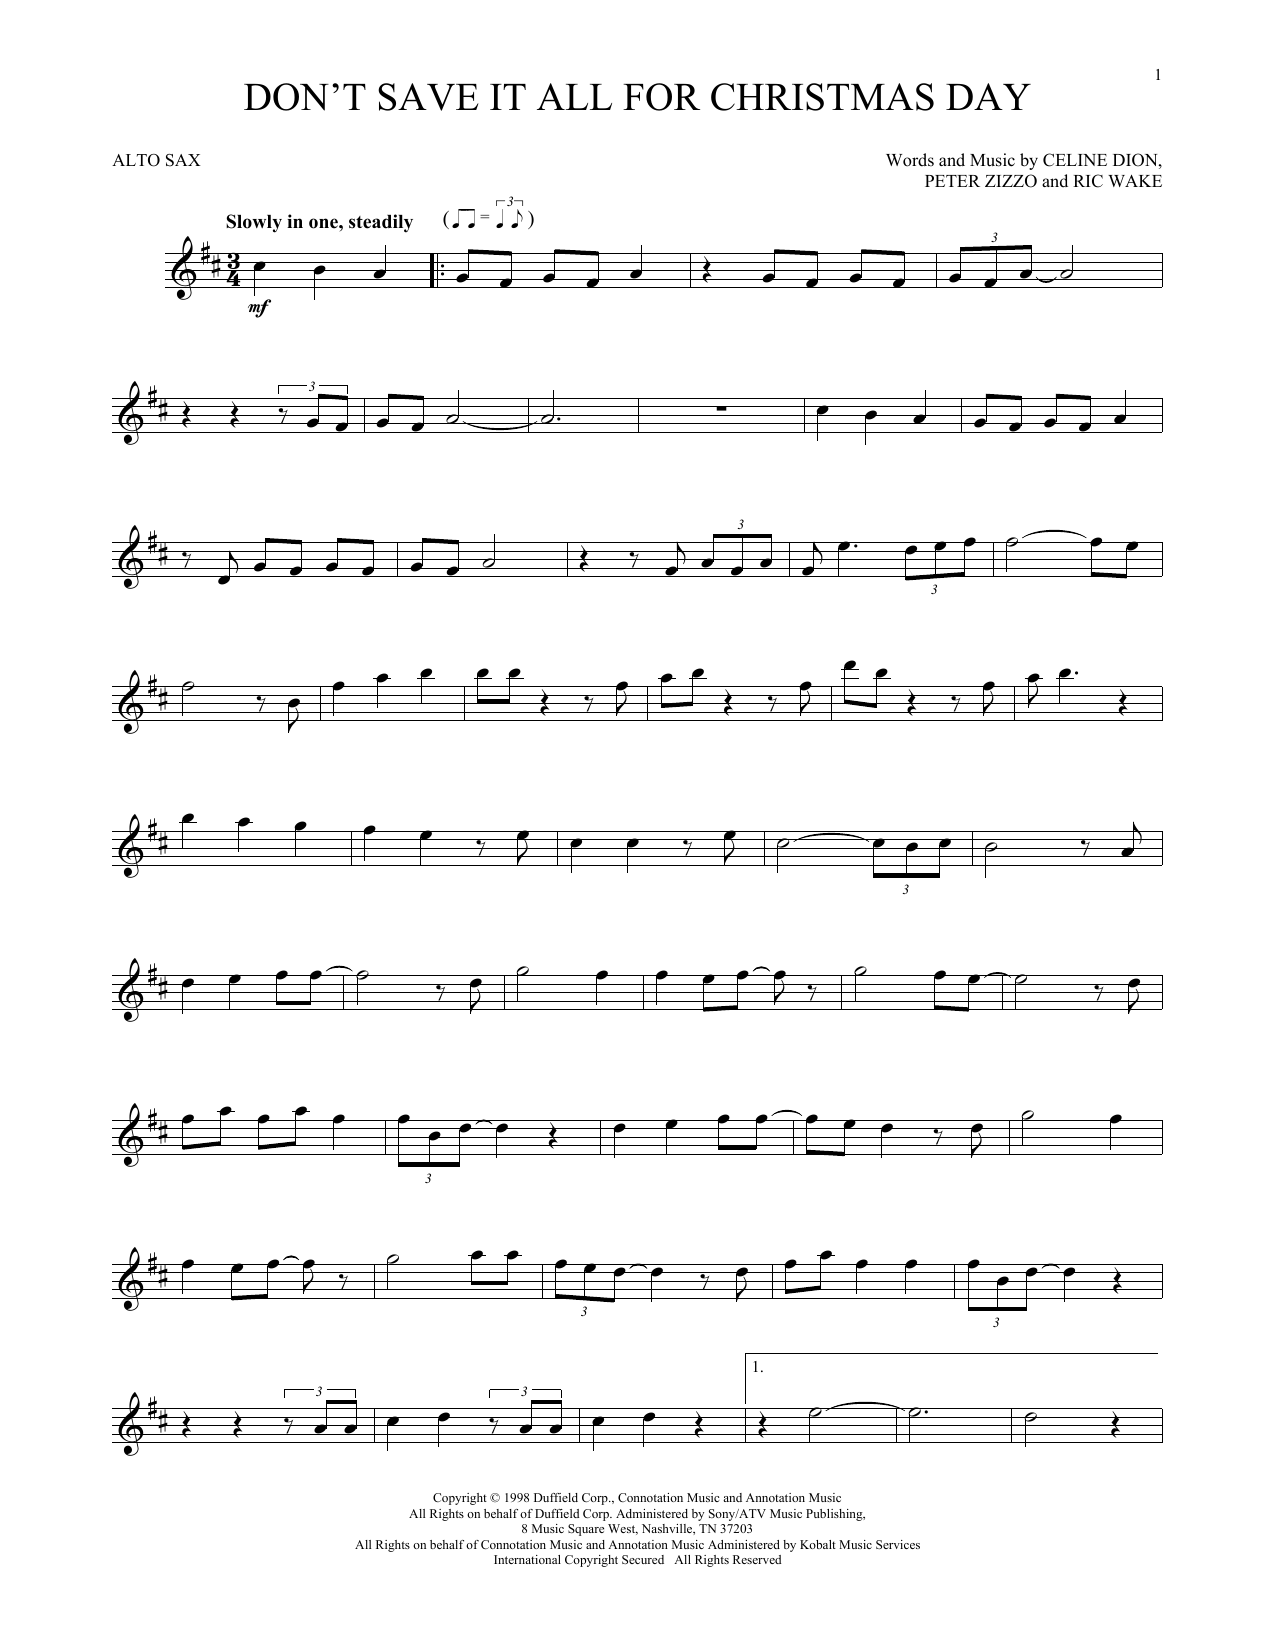 Don't Save It All For Christmas Day (Alto Sax Solo)